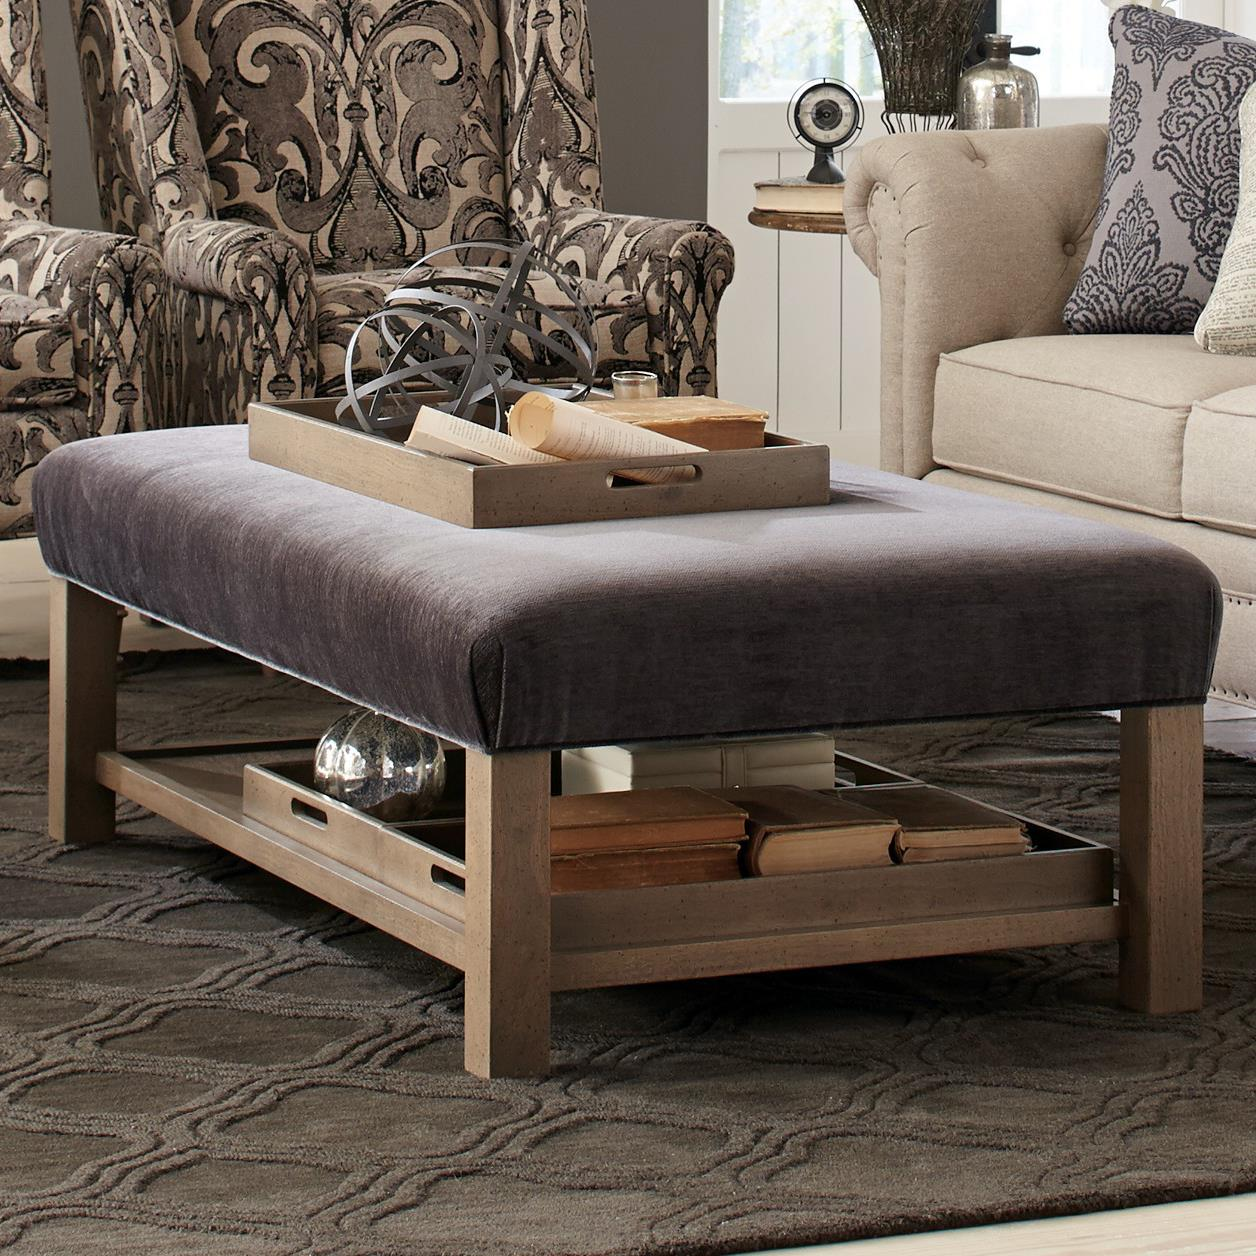 Storage Bench Ottoman With Tray